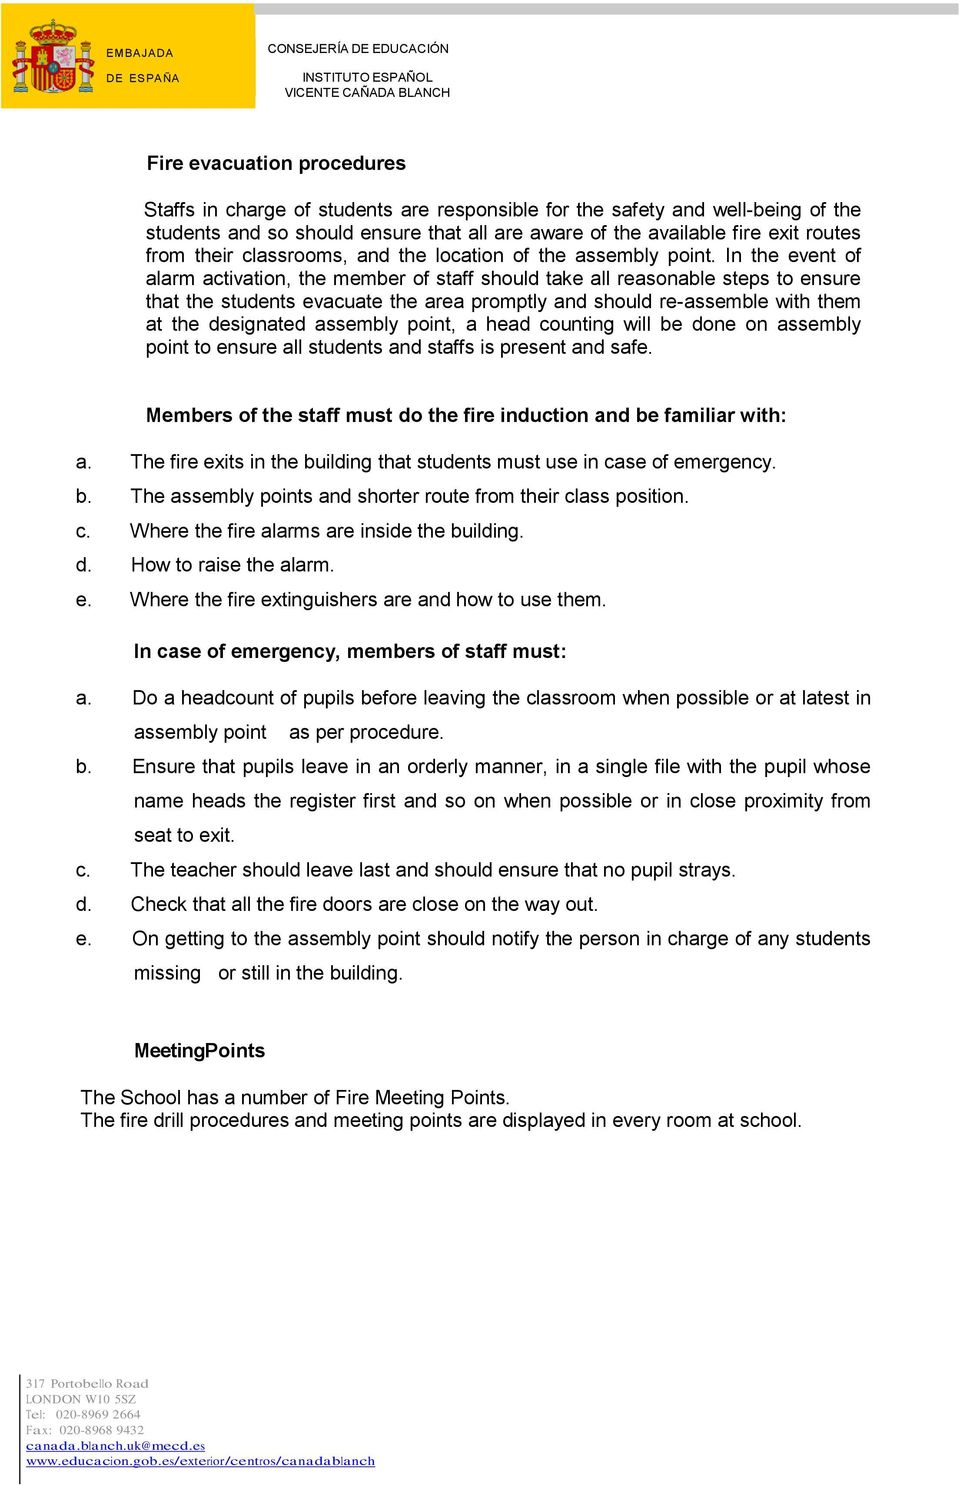 In the event of alarm activation, the member of staff should take all reasonable steps to ensure that the students evacuate the area promptly and should re-assemble with them at the designated